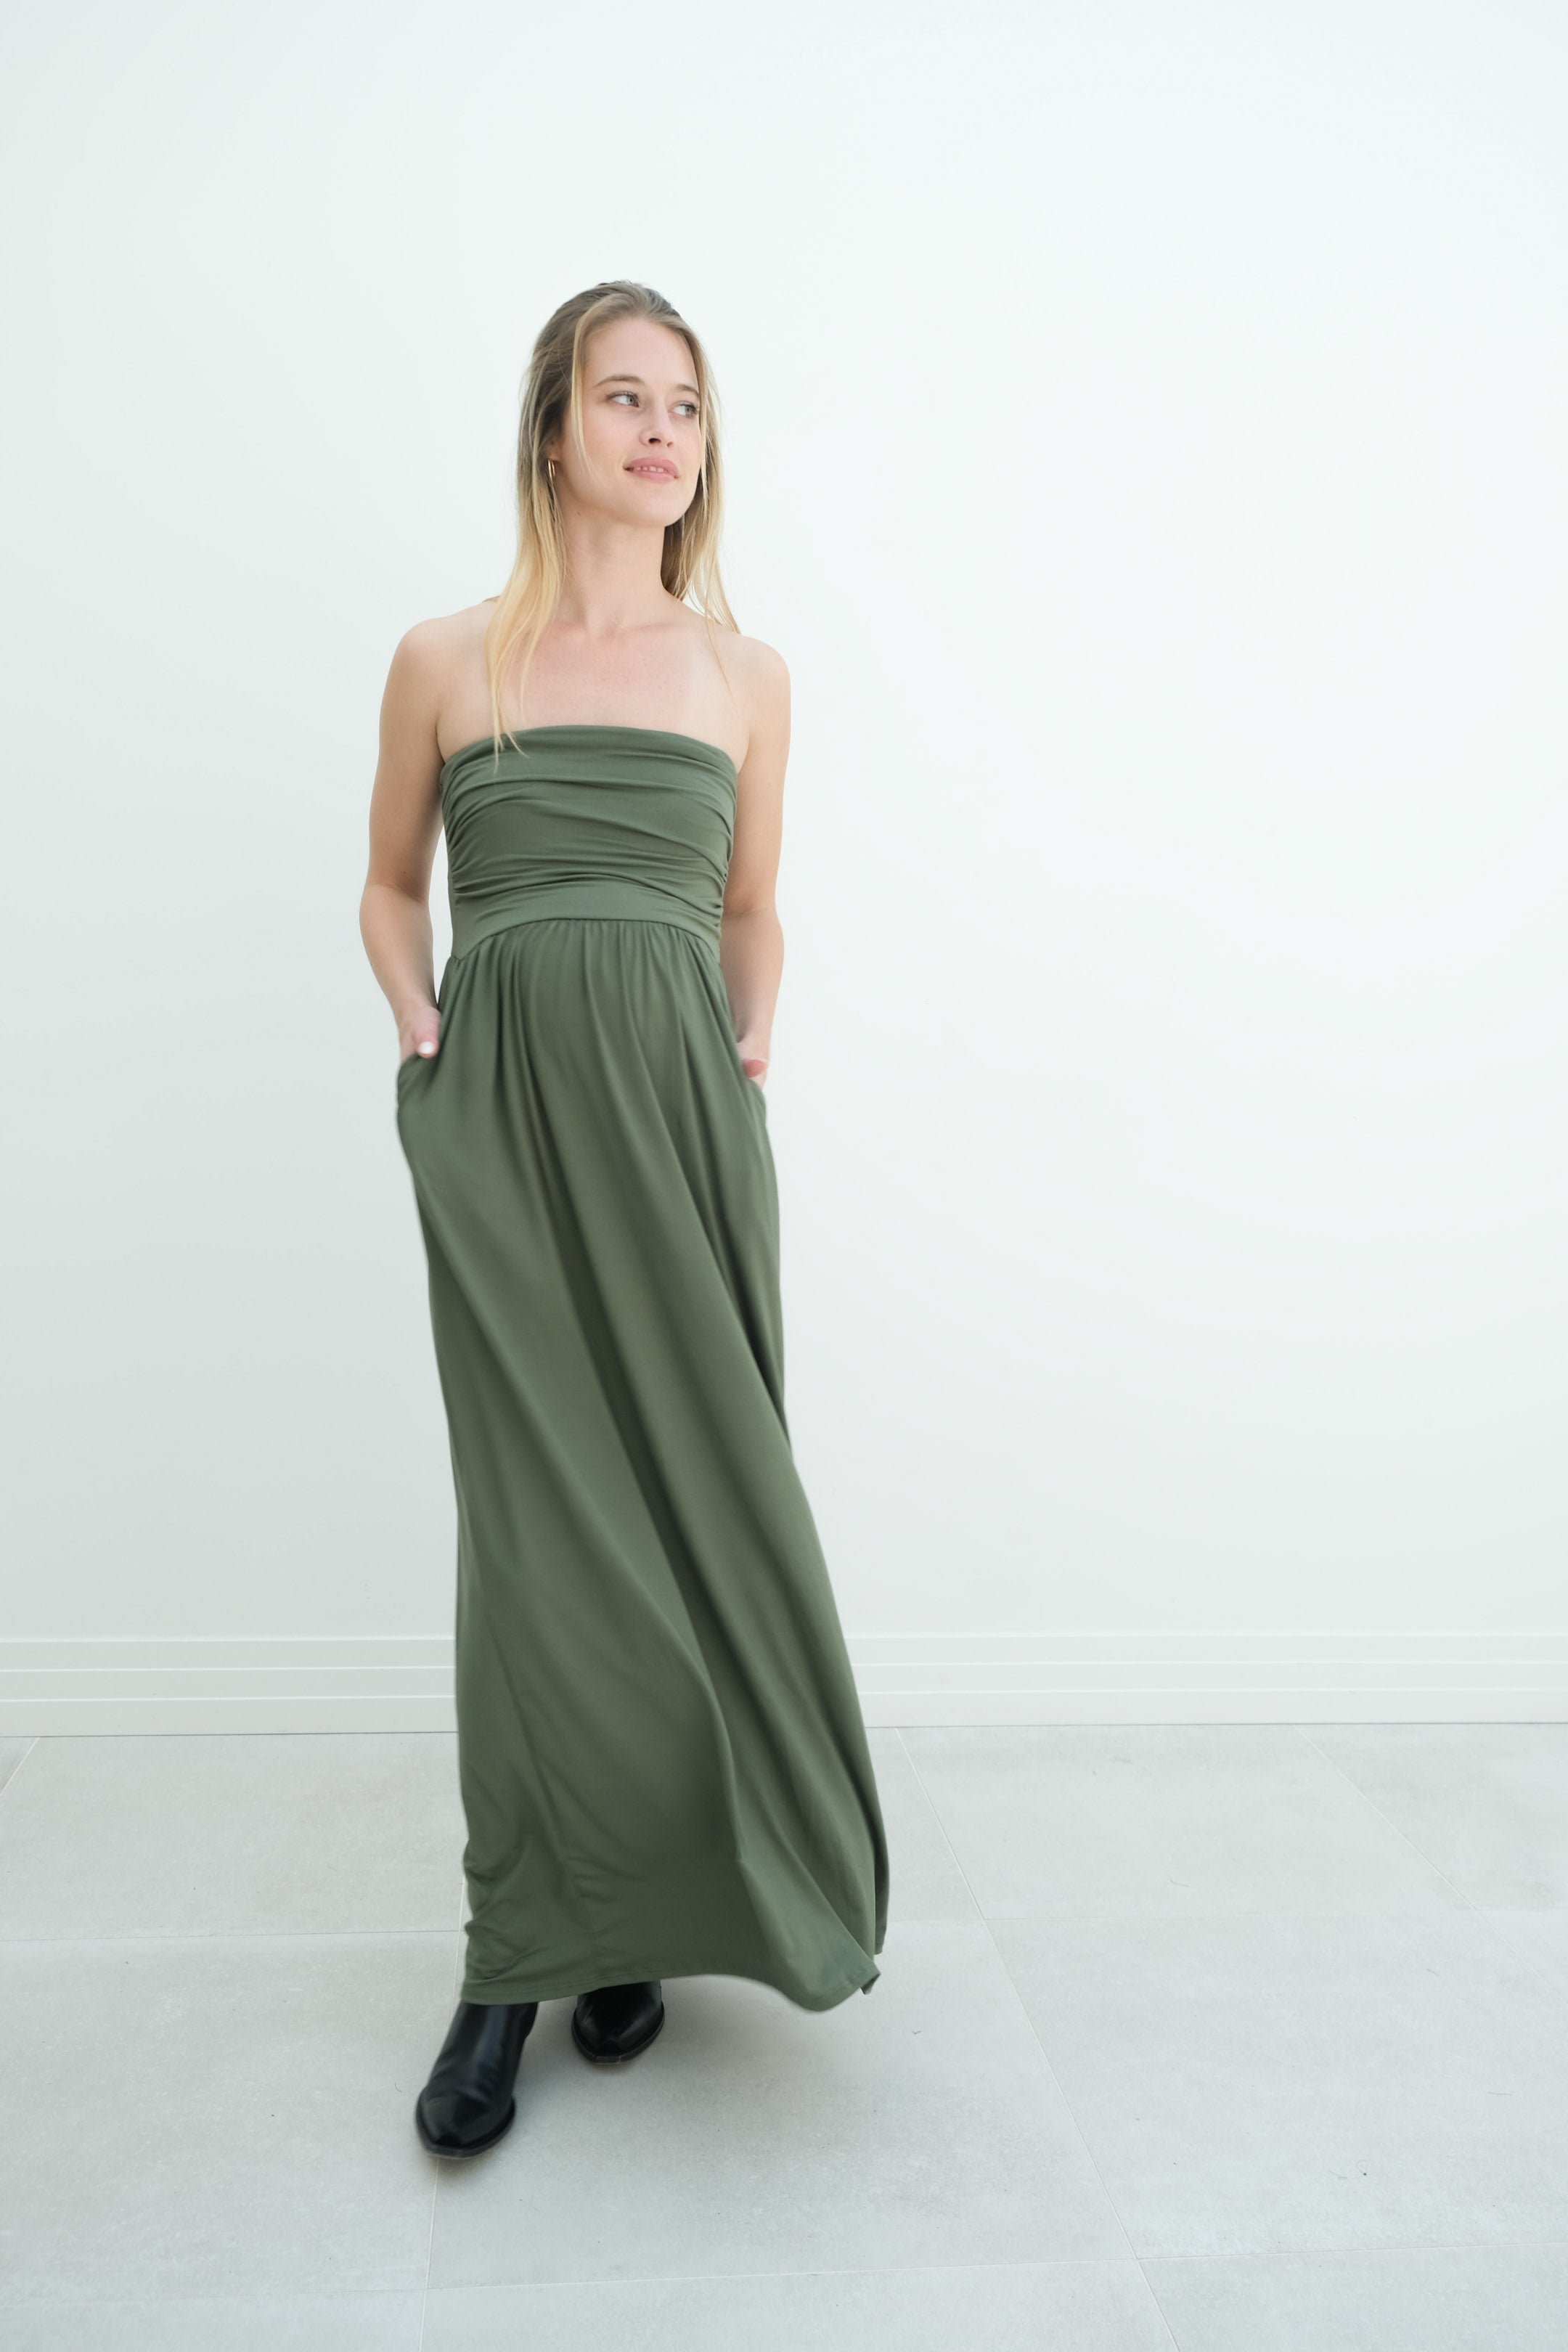 a woman in a green strapless pregnancy dress